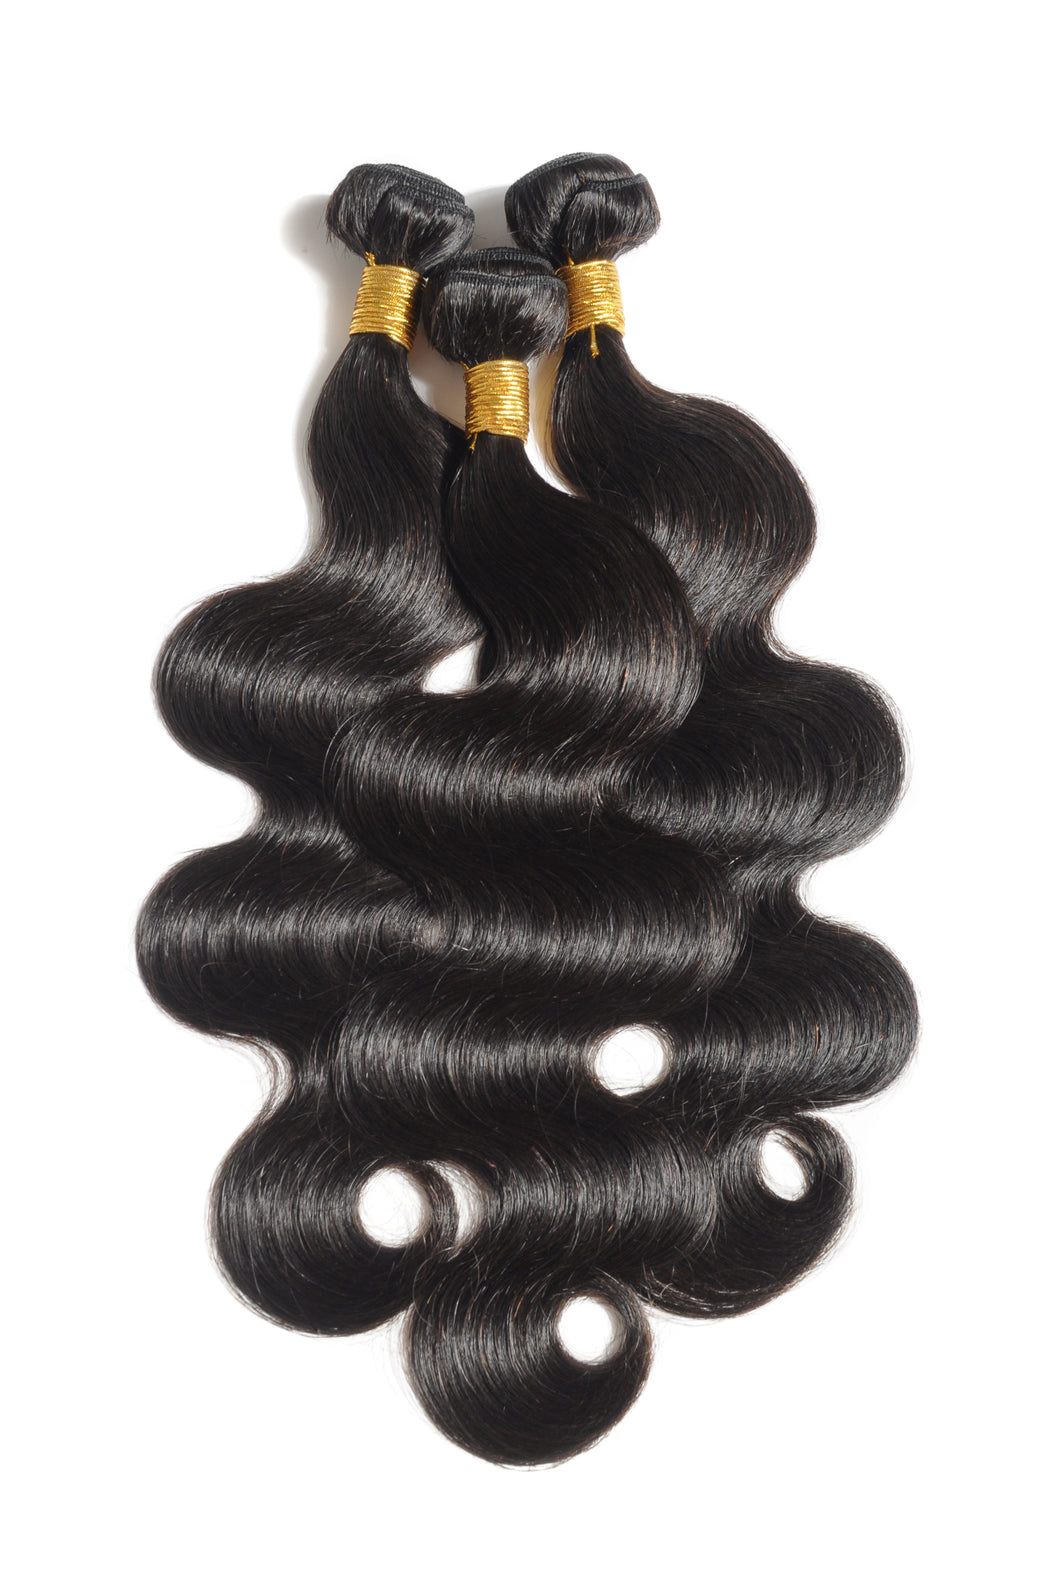 VIRGIN INDIAN HAIR - 22